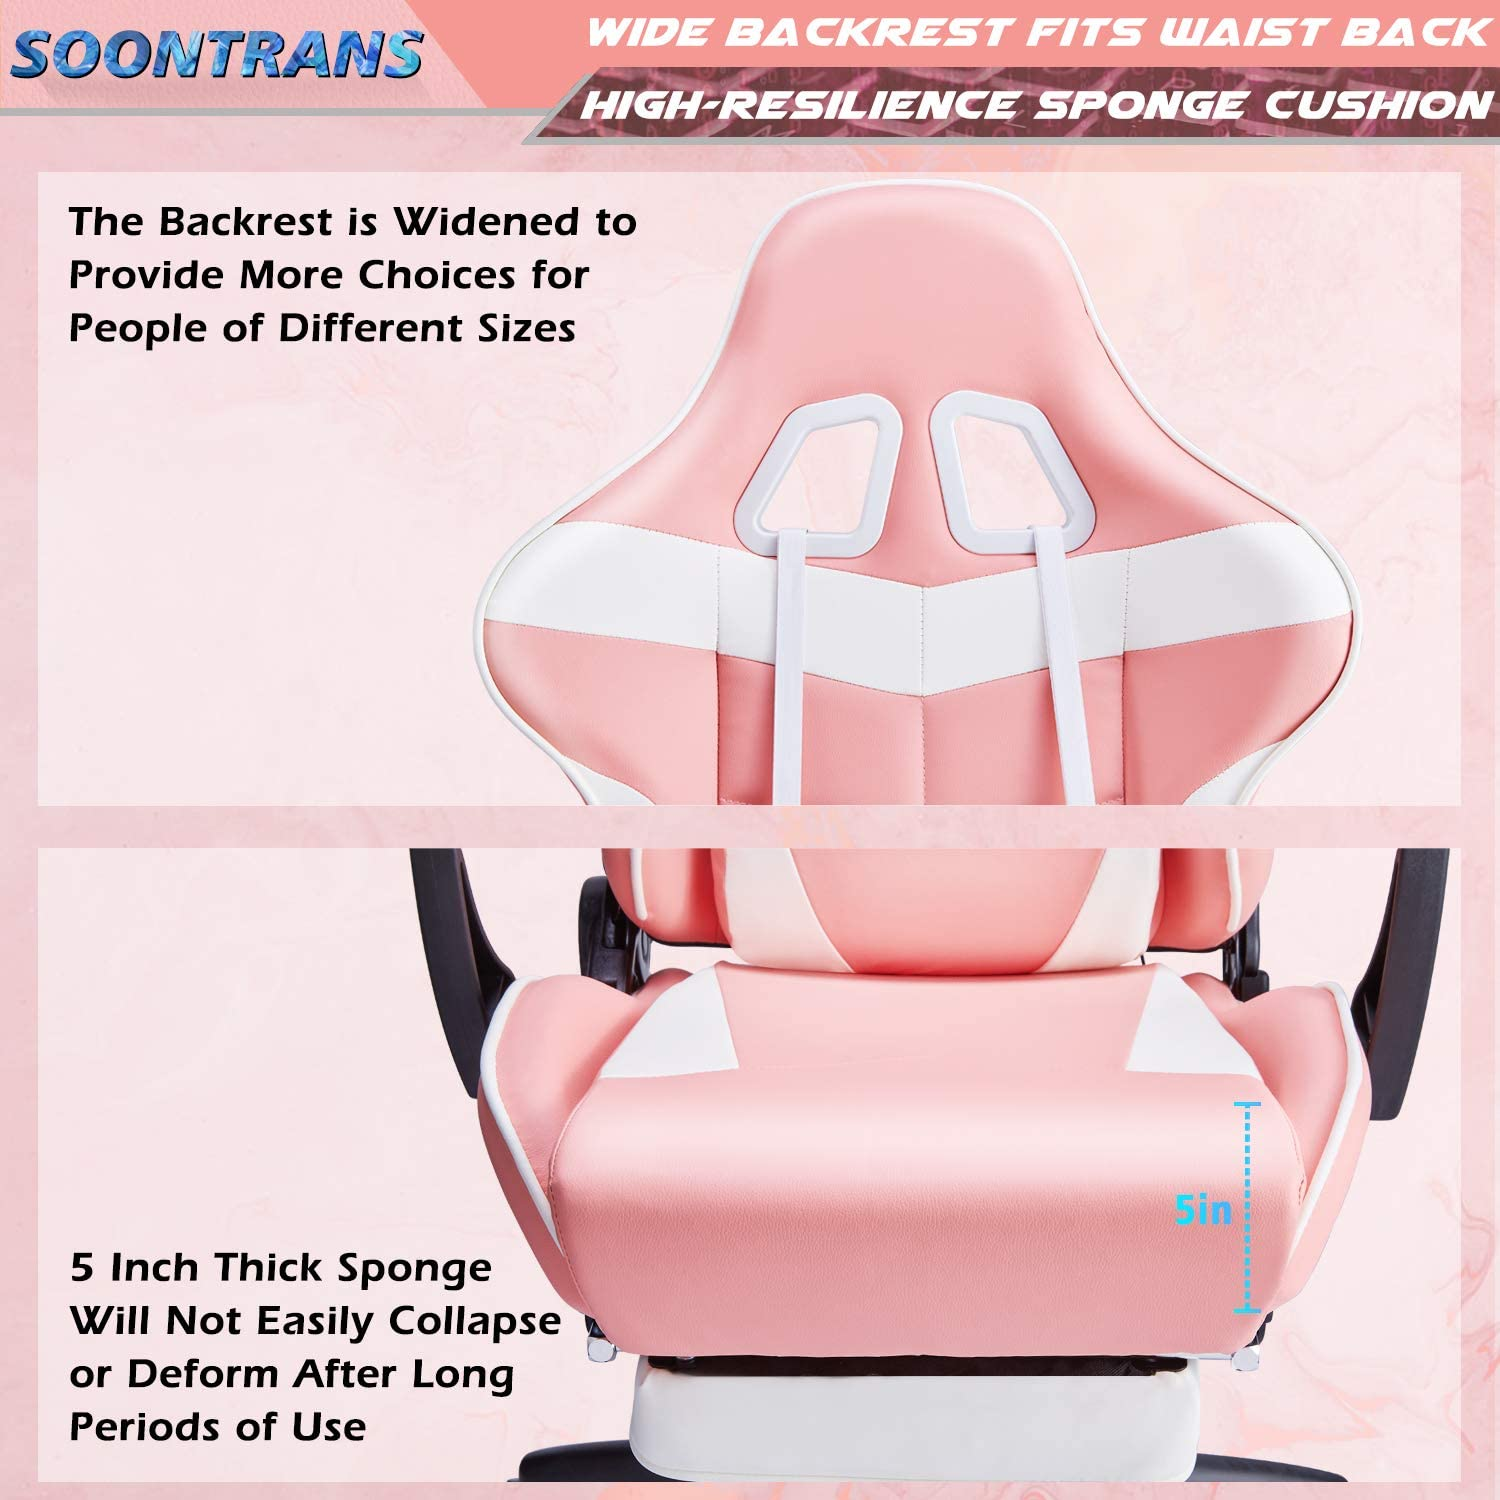 Hot-Pink Soontrans Massage Plus Gaming Chair Pink Large Size Computer Chair High Back Lovly Office Chair Ergonomic Executive Swivel Chair with Footrest Headrest and Lumbar Pillow Support